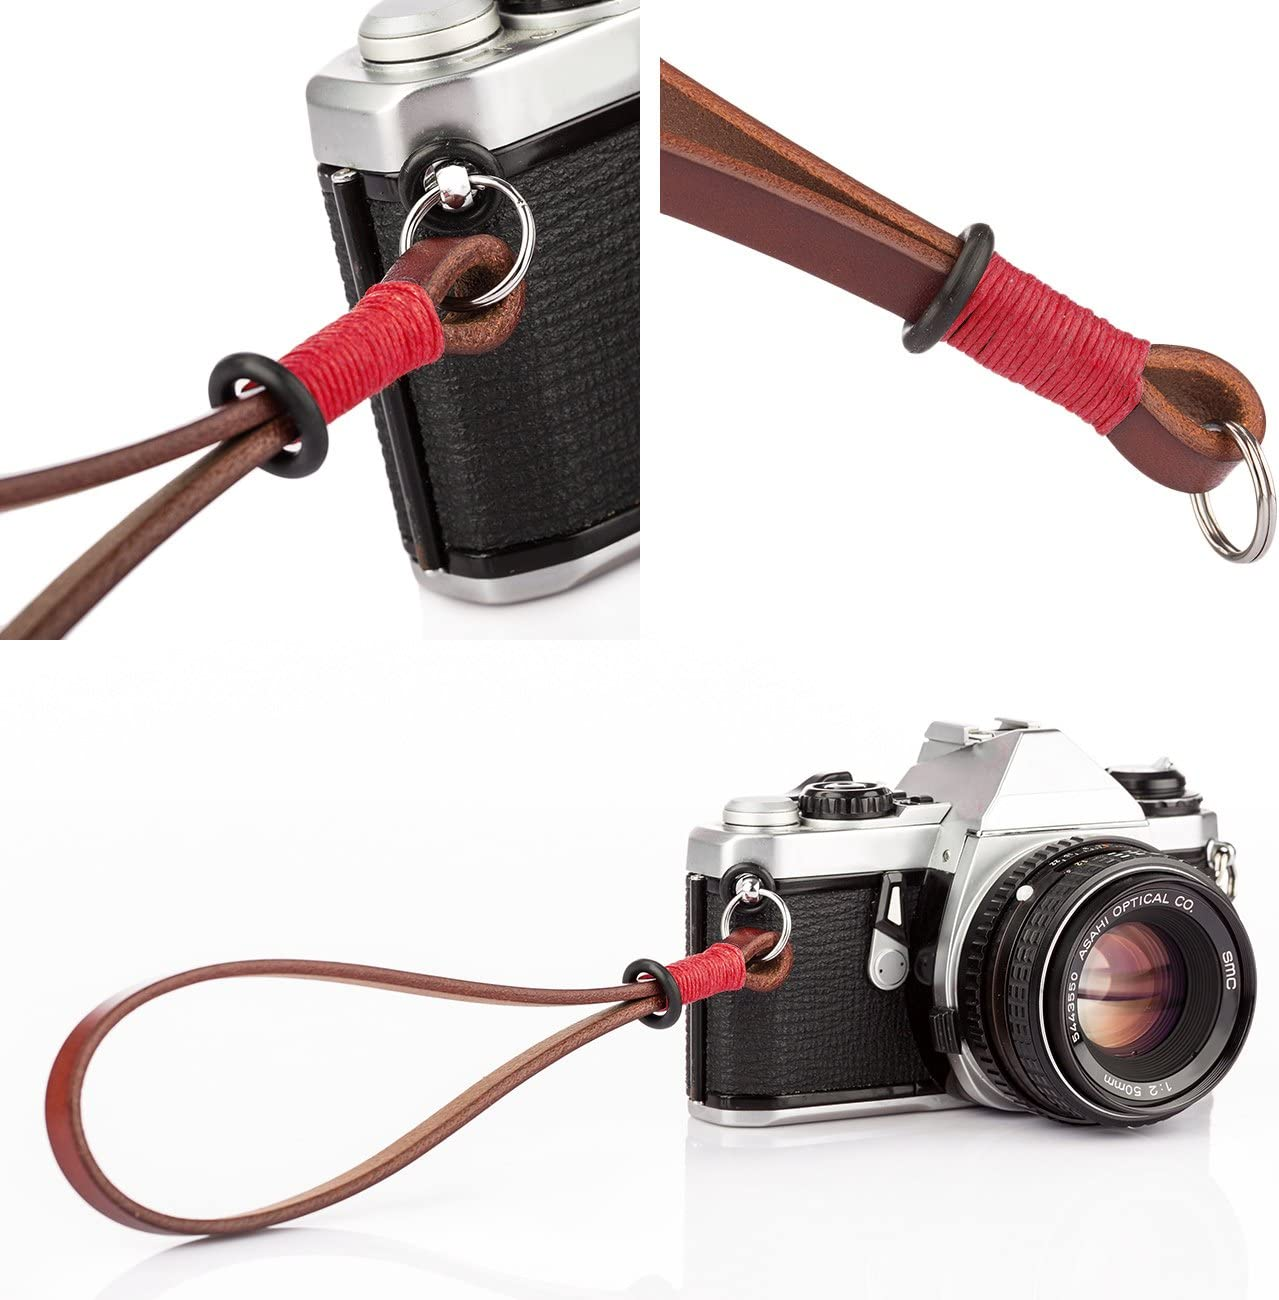 TARION Camera Wrist Strap Genuine Leather Camera Hand Strap Handmade Handcrafted Camera Strap Wriststrap Handstrap Retro Style for Men Woman Compact SLR DSLR Mirrorless Cameras Blue